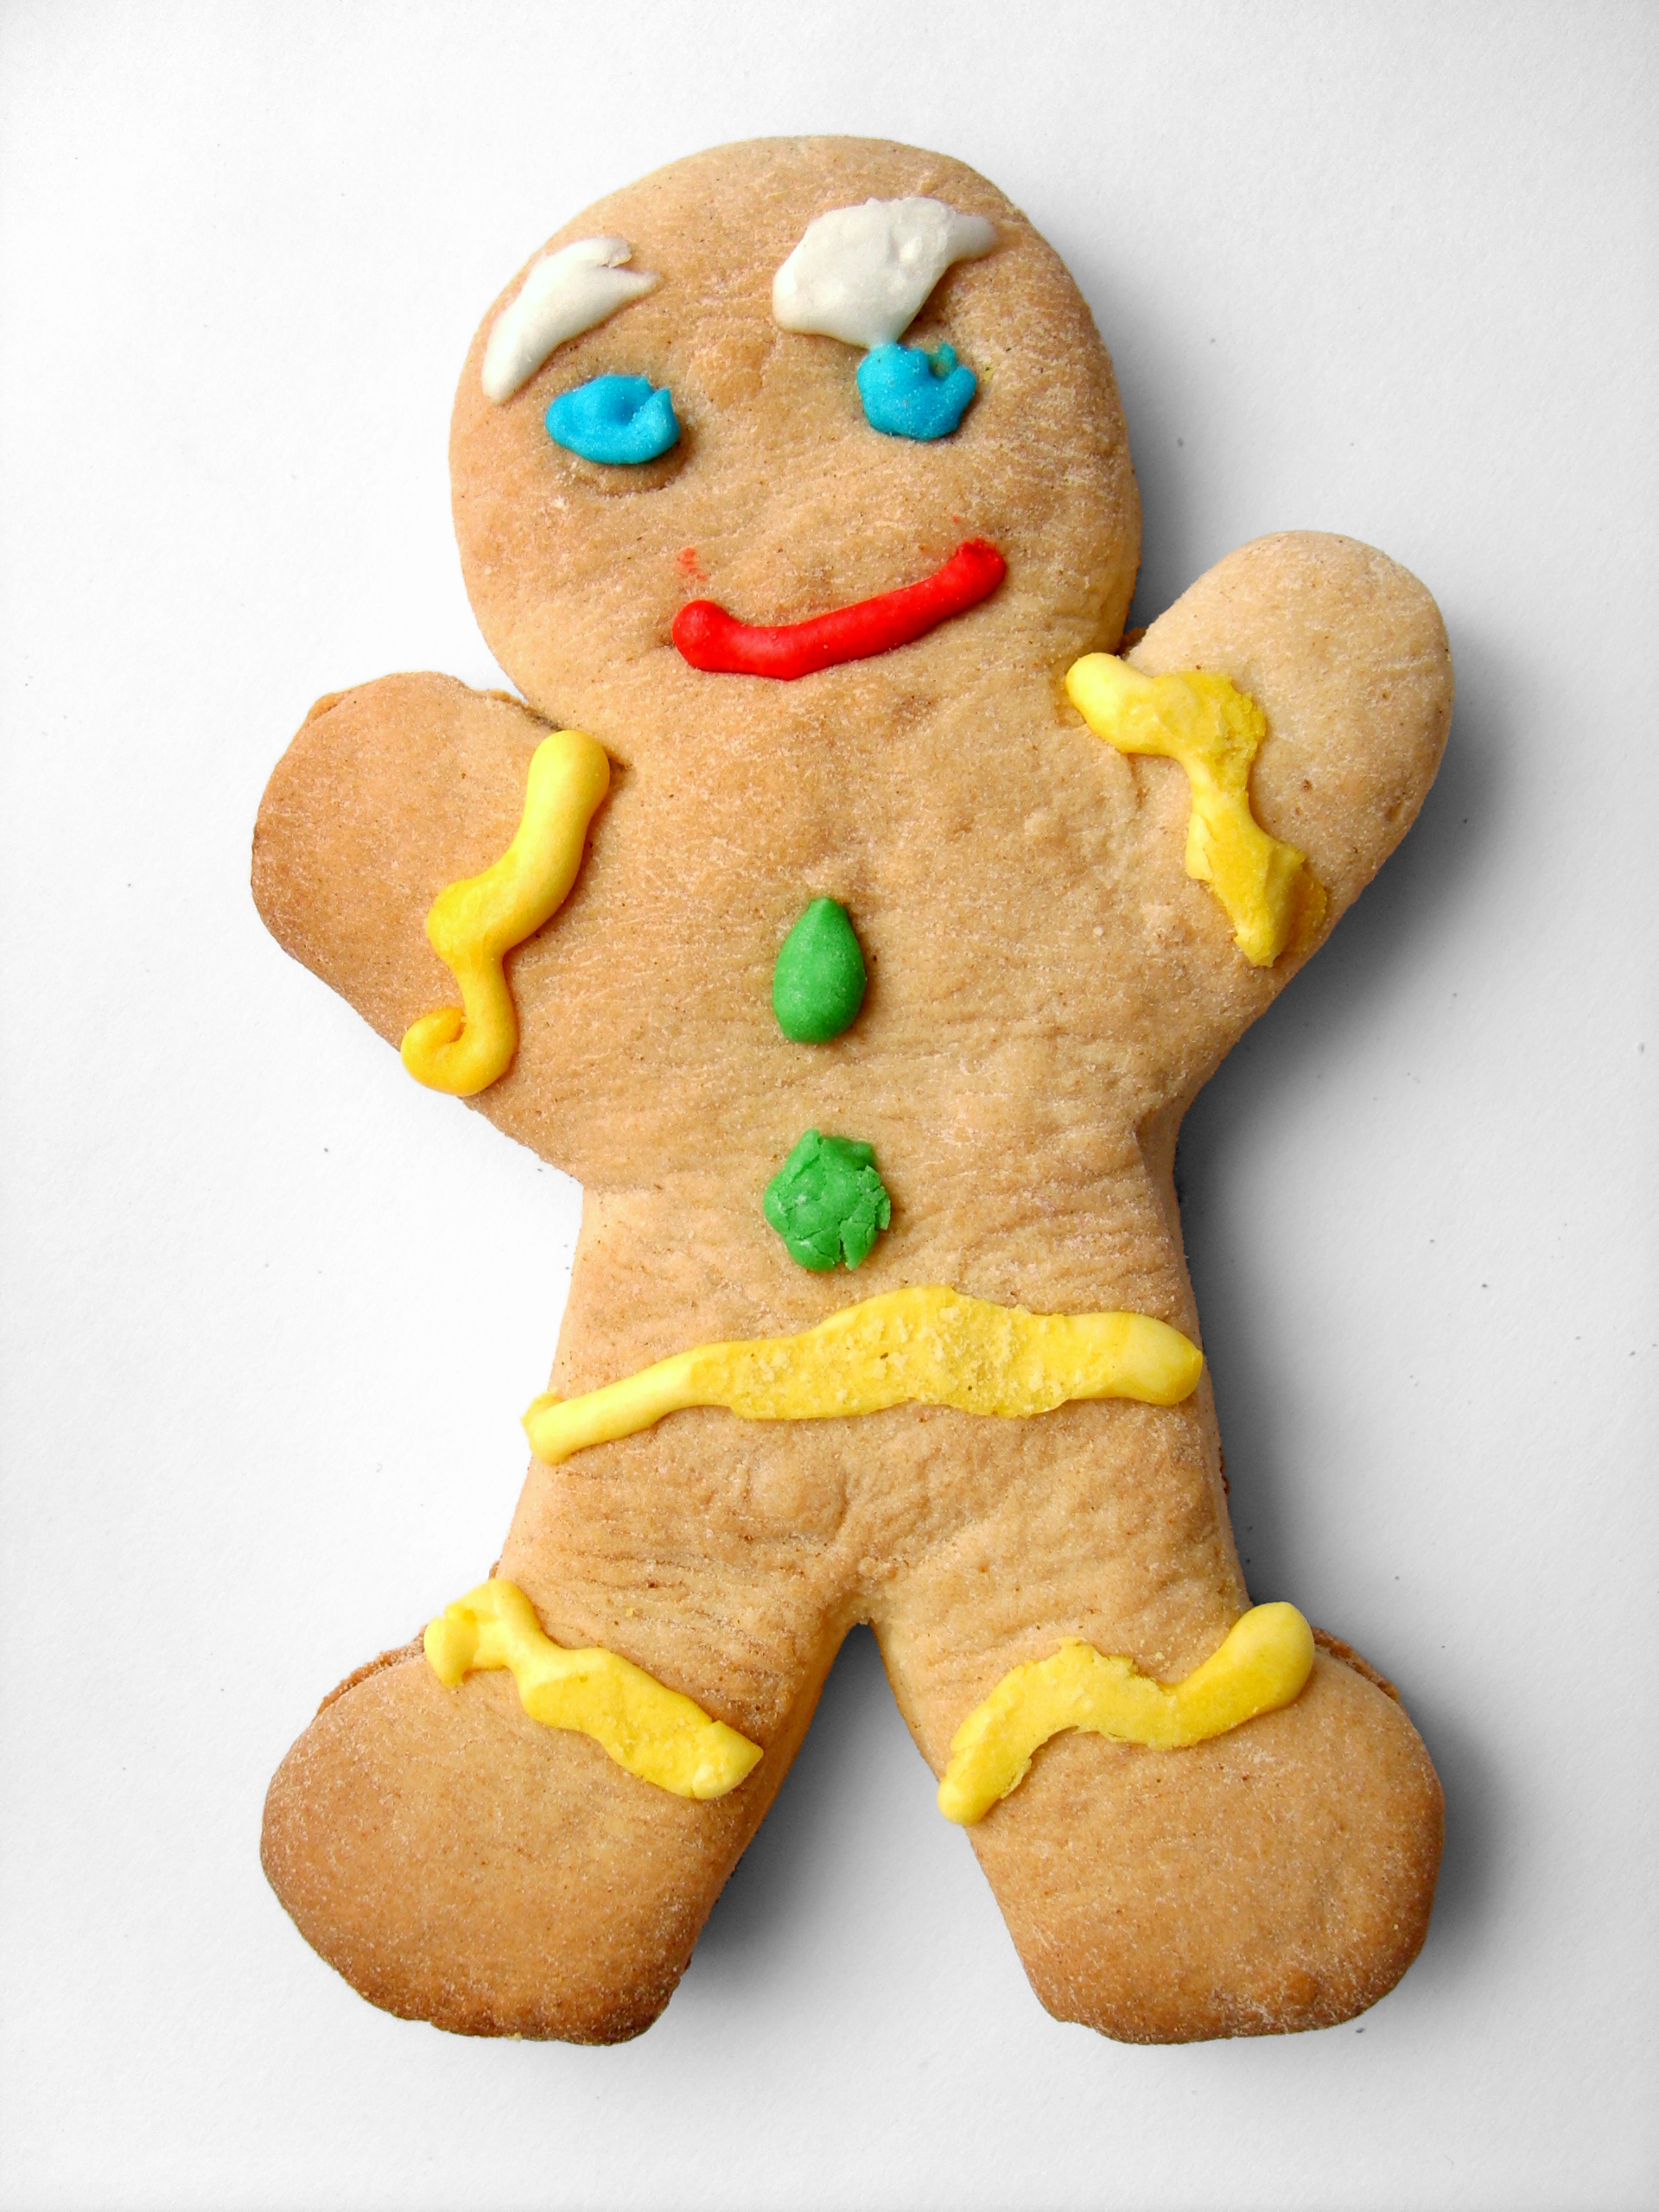 File:Gingy Cookie.jpg - Wikimedia Commons